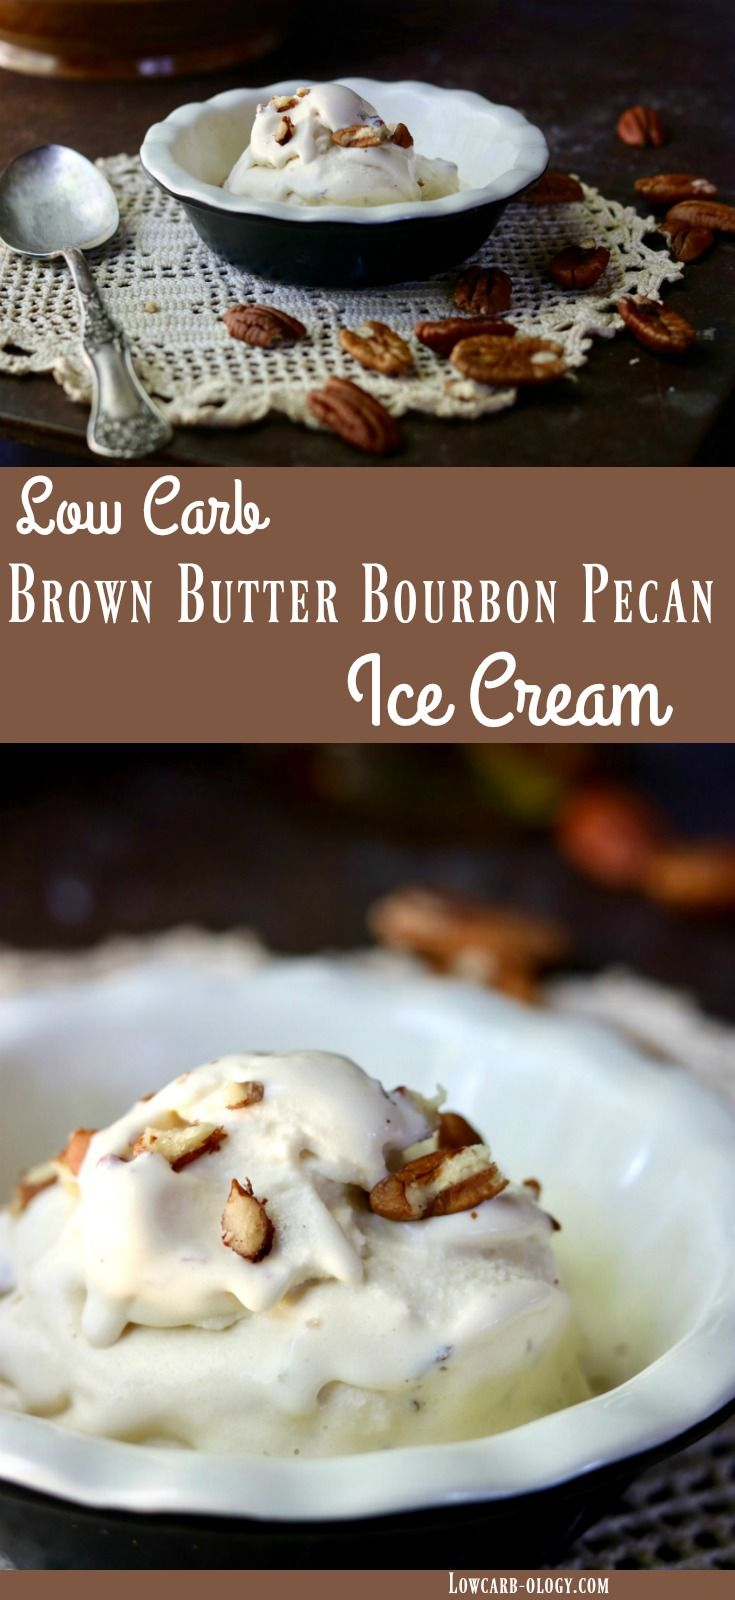 Low Carb Ice Cream Brown Butter Bourbon Pecan Lowcarb Ology